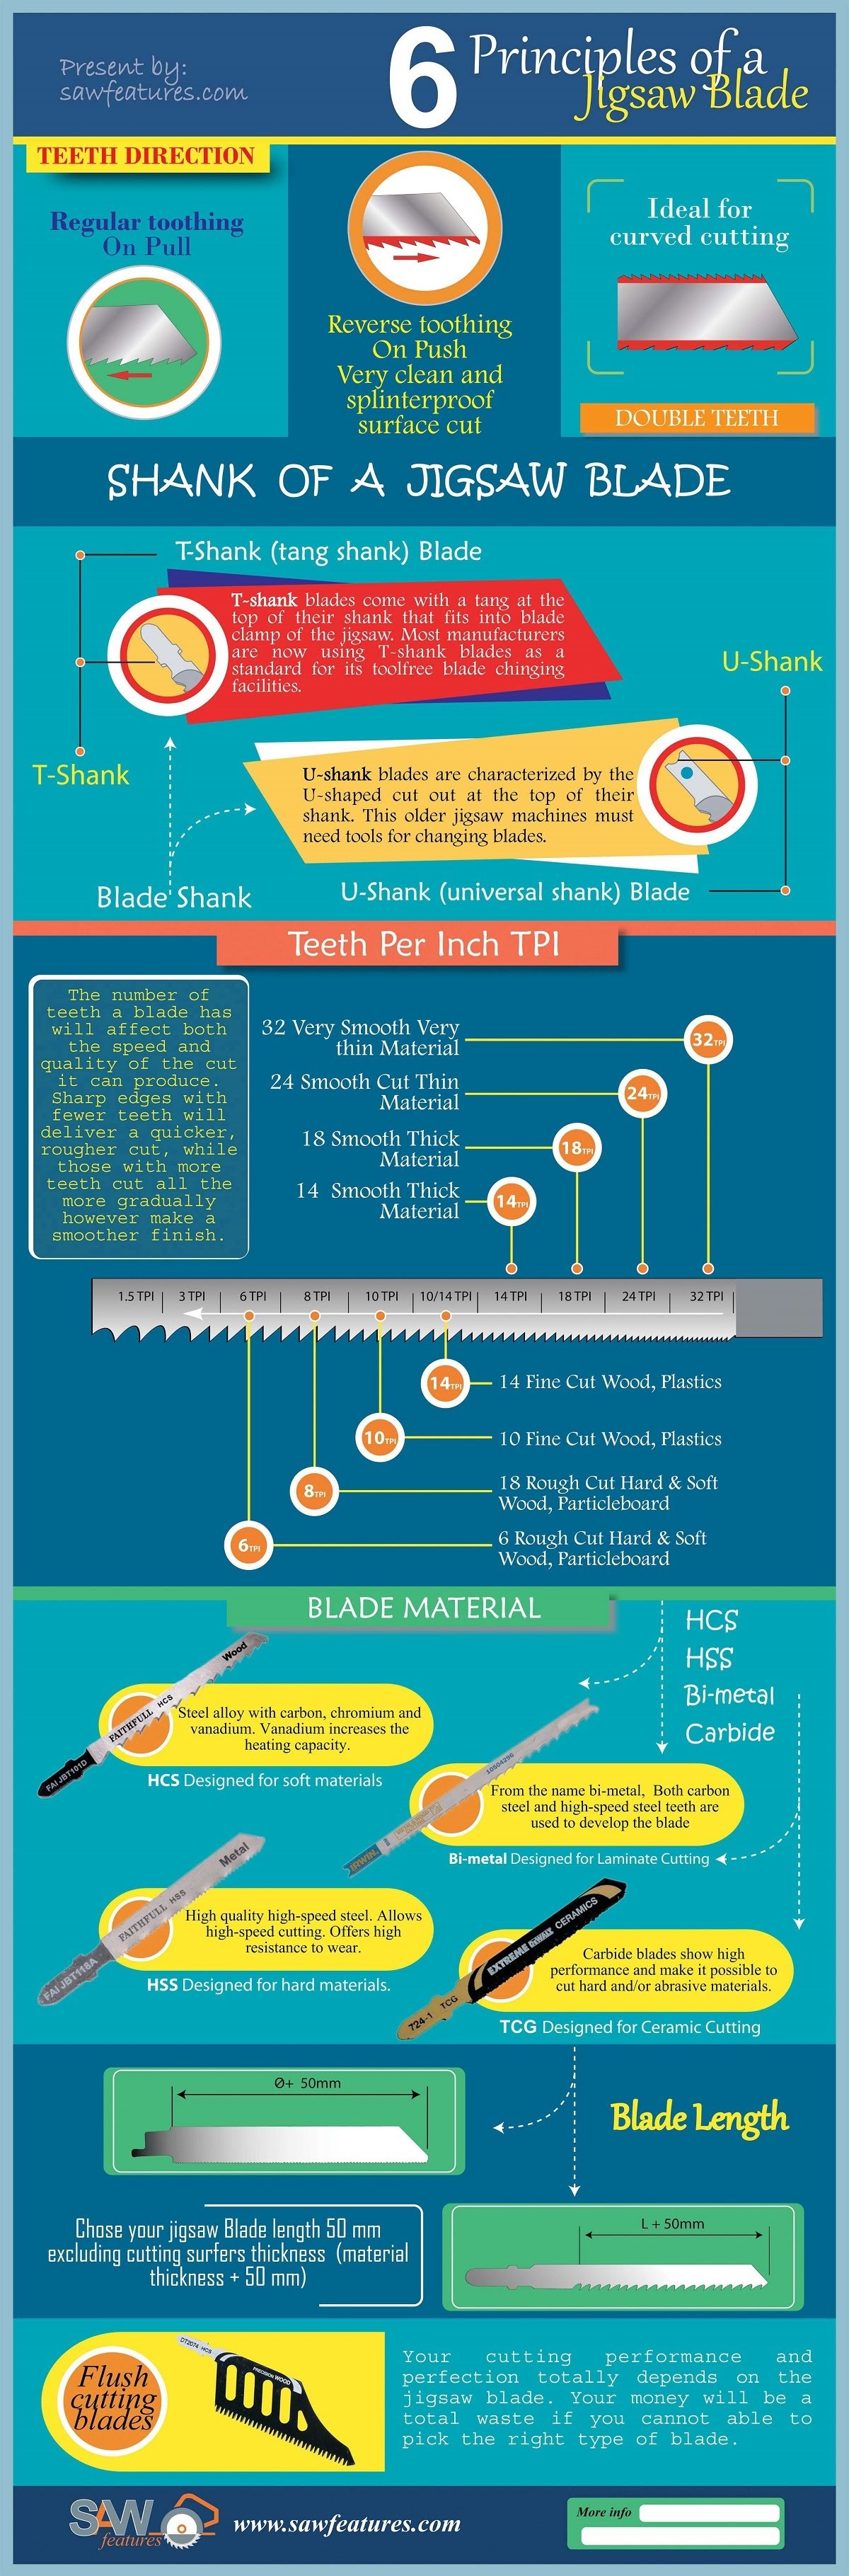 Six Principal Of a Jigsaw Blades: Know Before You Work #infographic